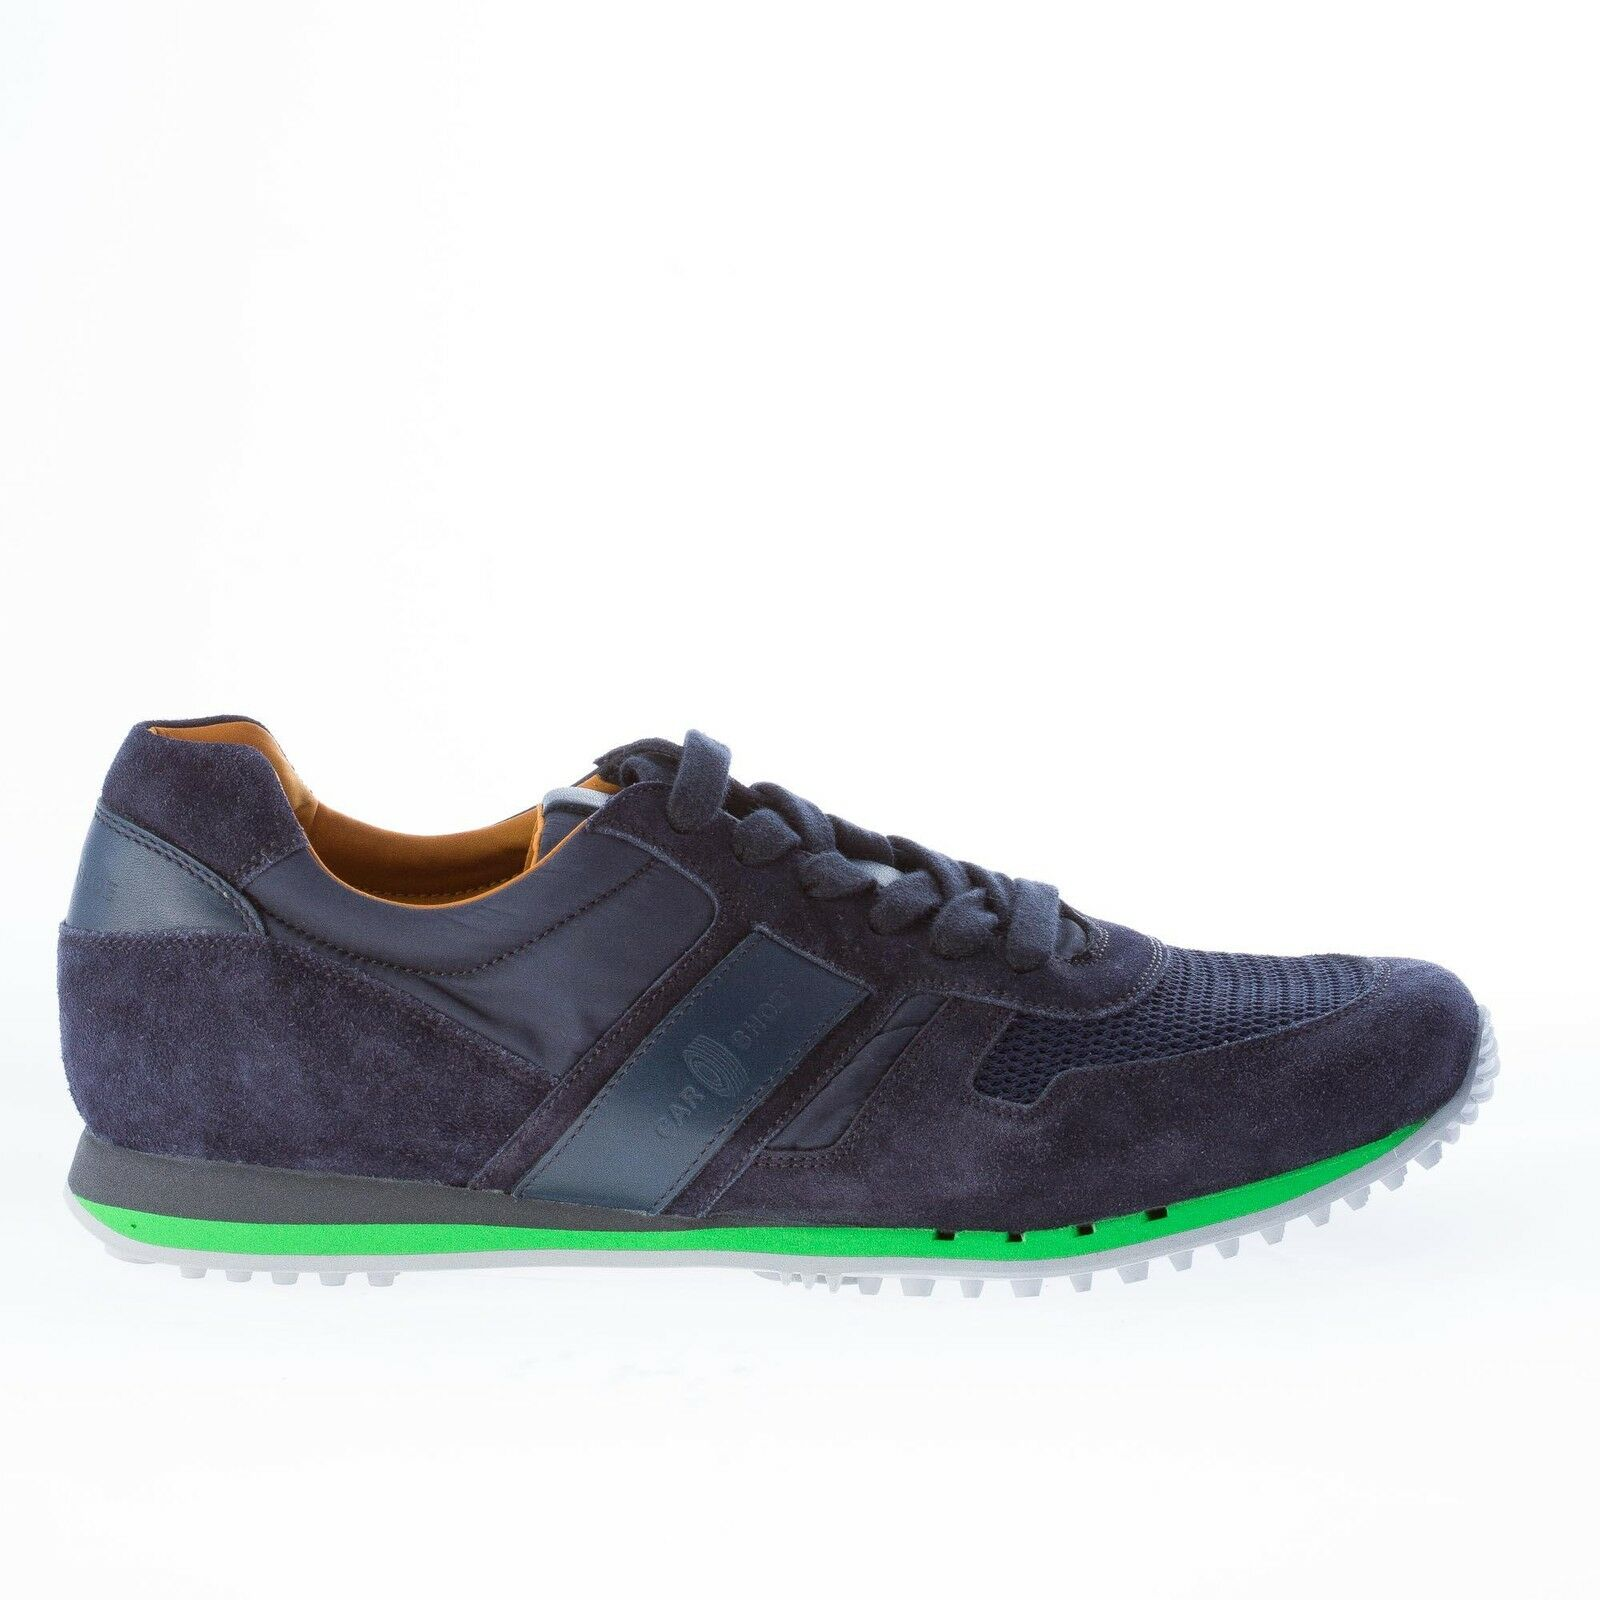 CAR SHOE men shoes bluee suede and fabric lace sneaker with logo leather patch